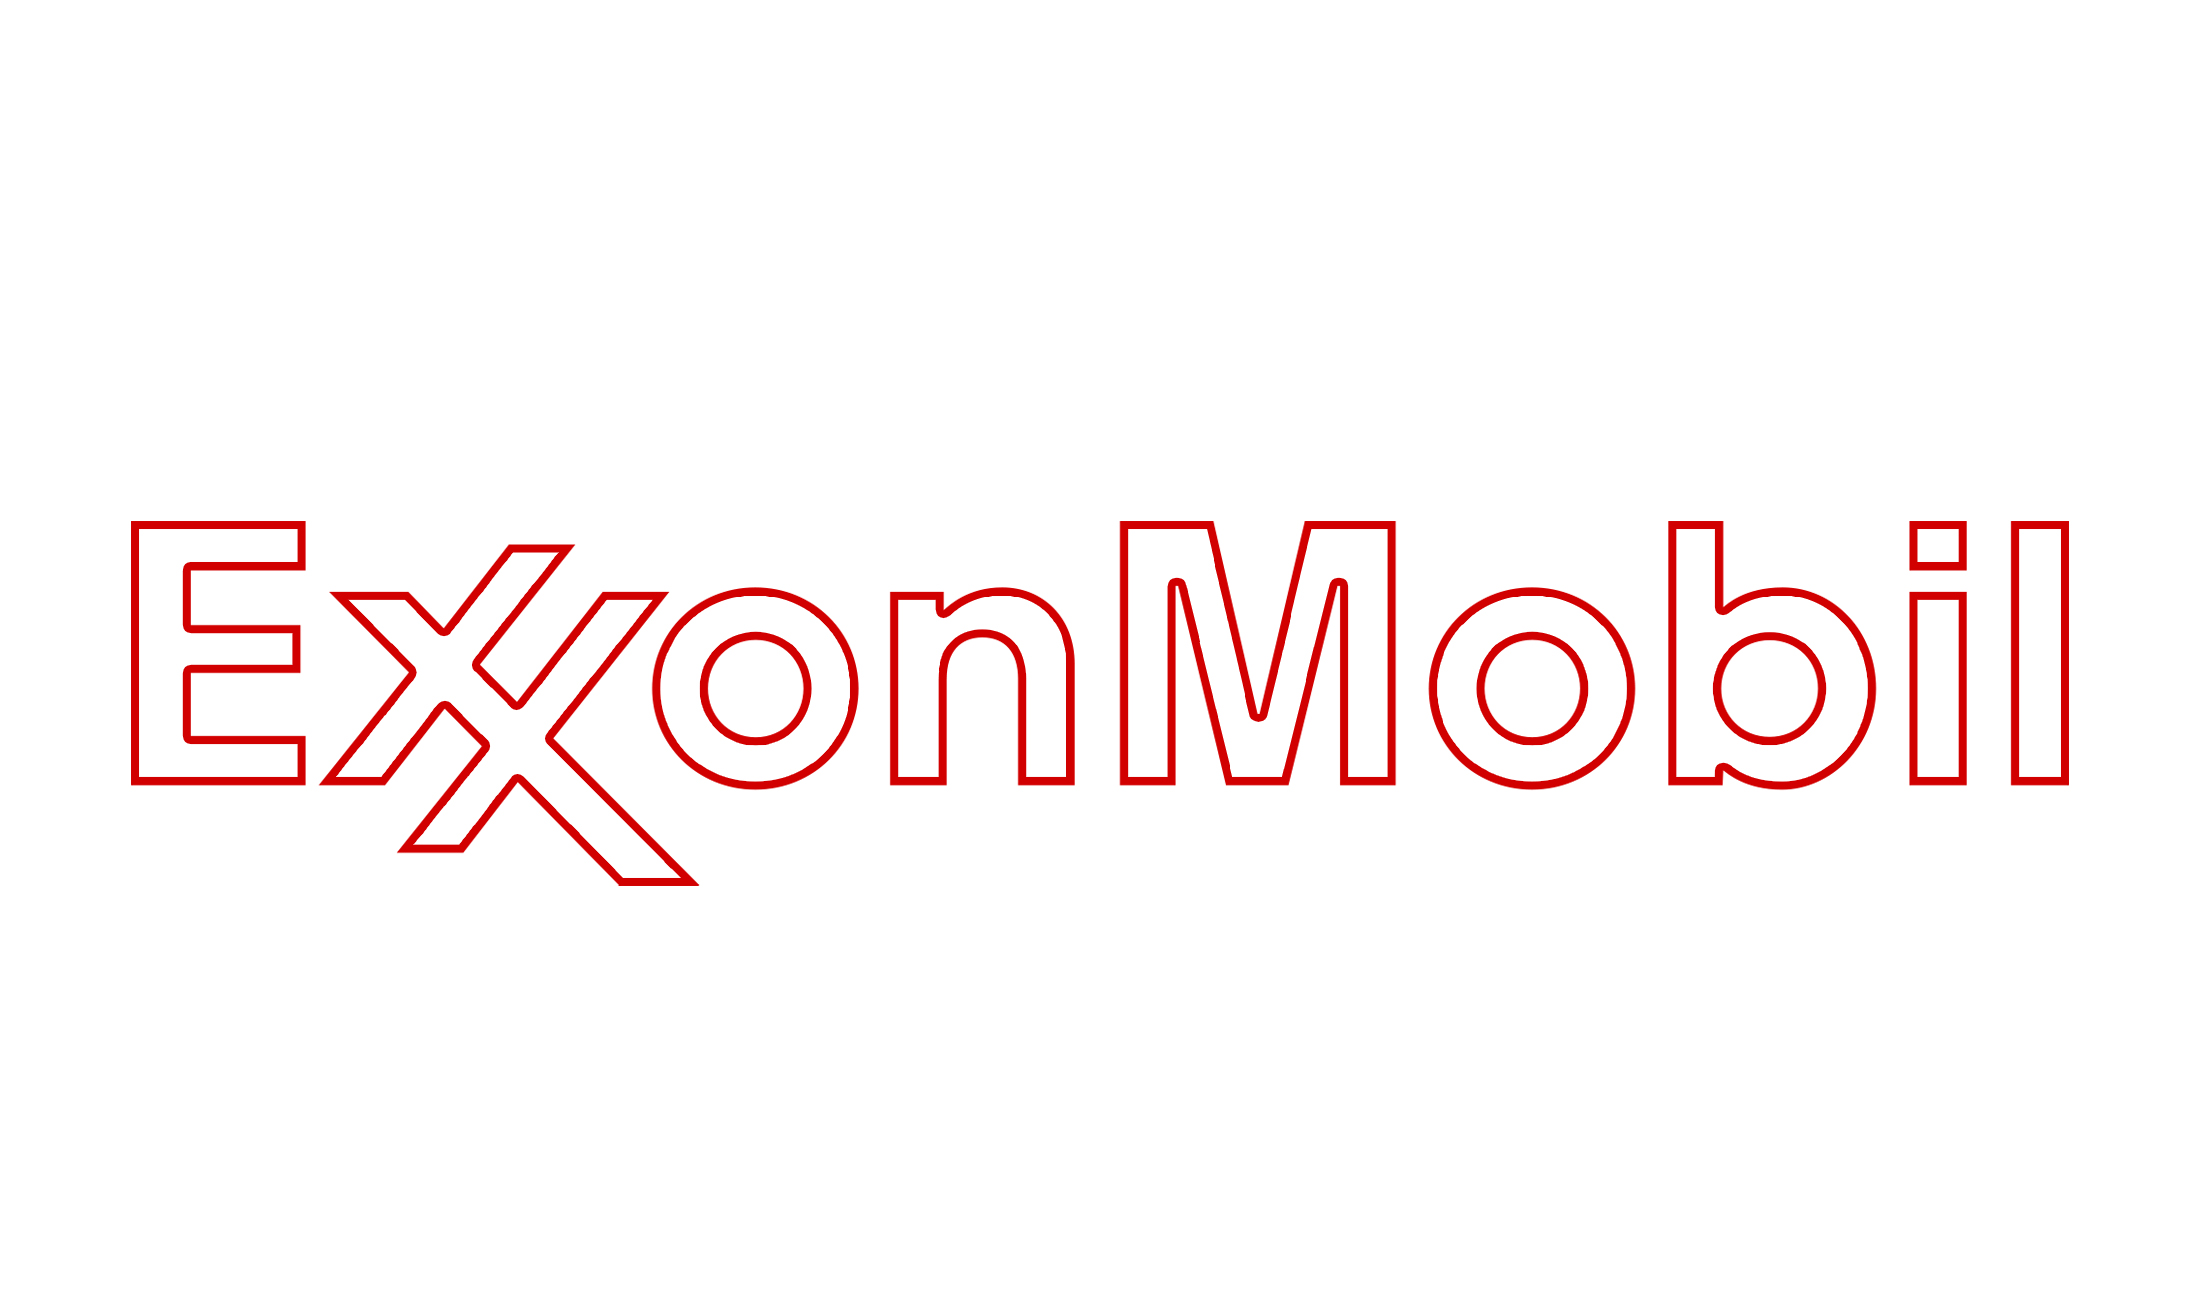 Exxon Mobil Logo - ExxonMobil Logo, ExxonMobil Symbol, Meaning, History and Evolution